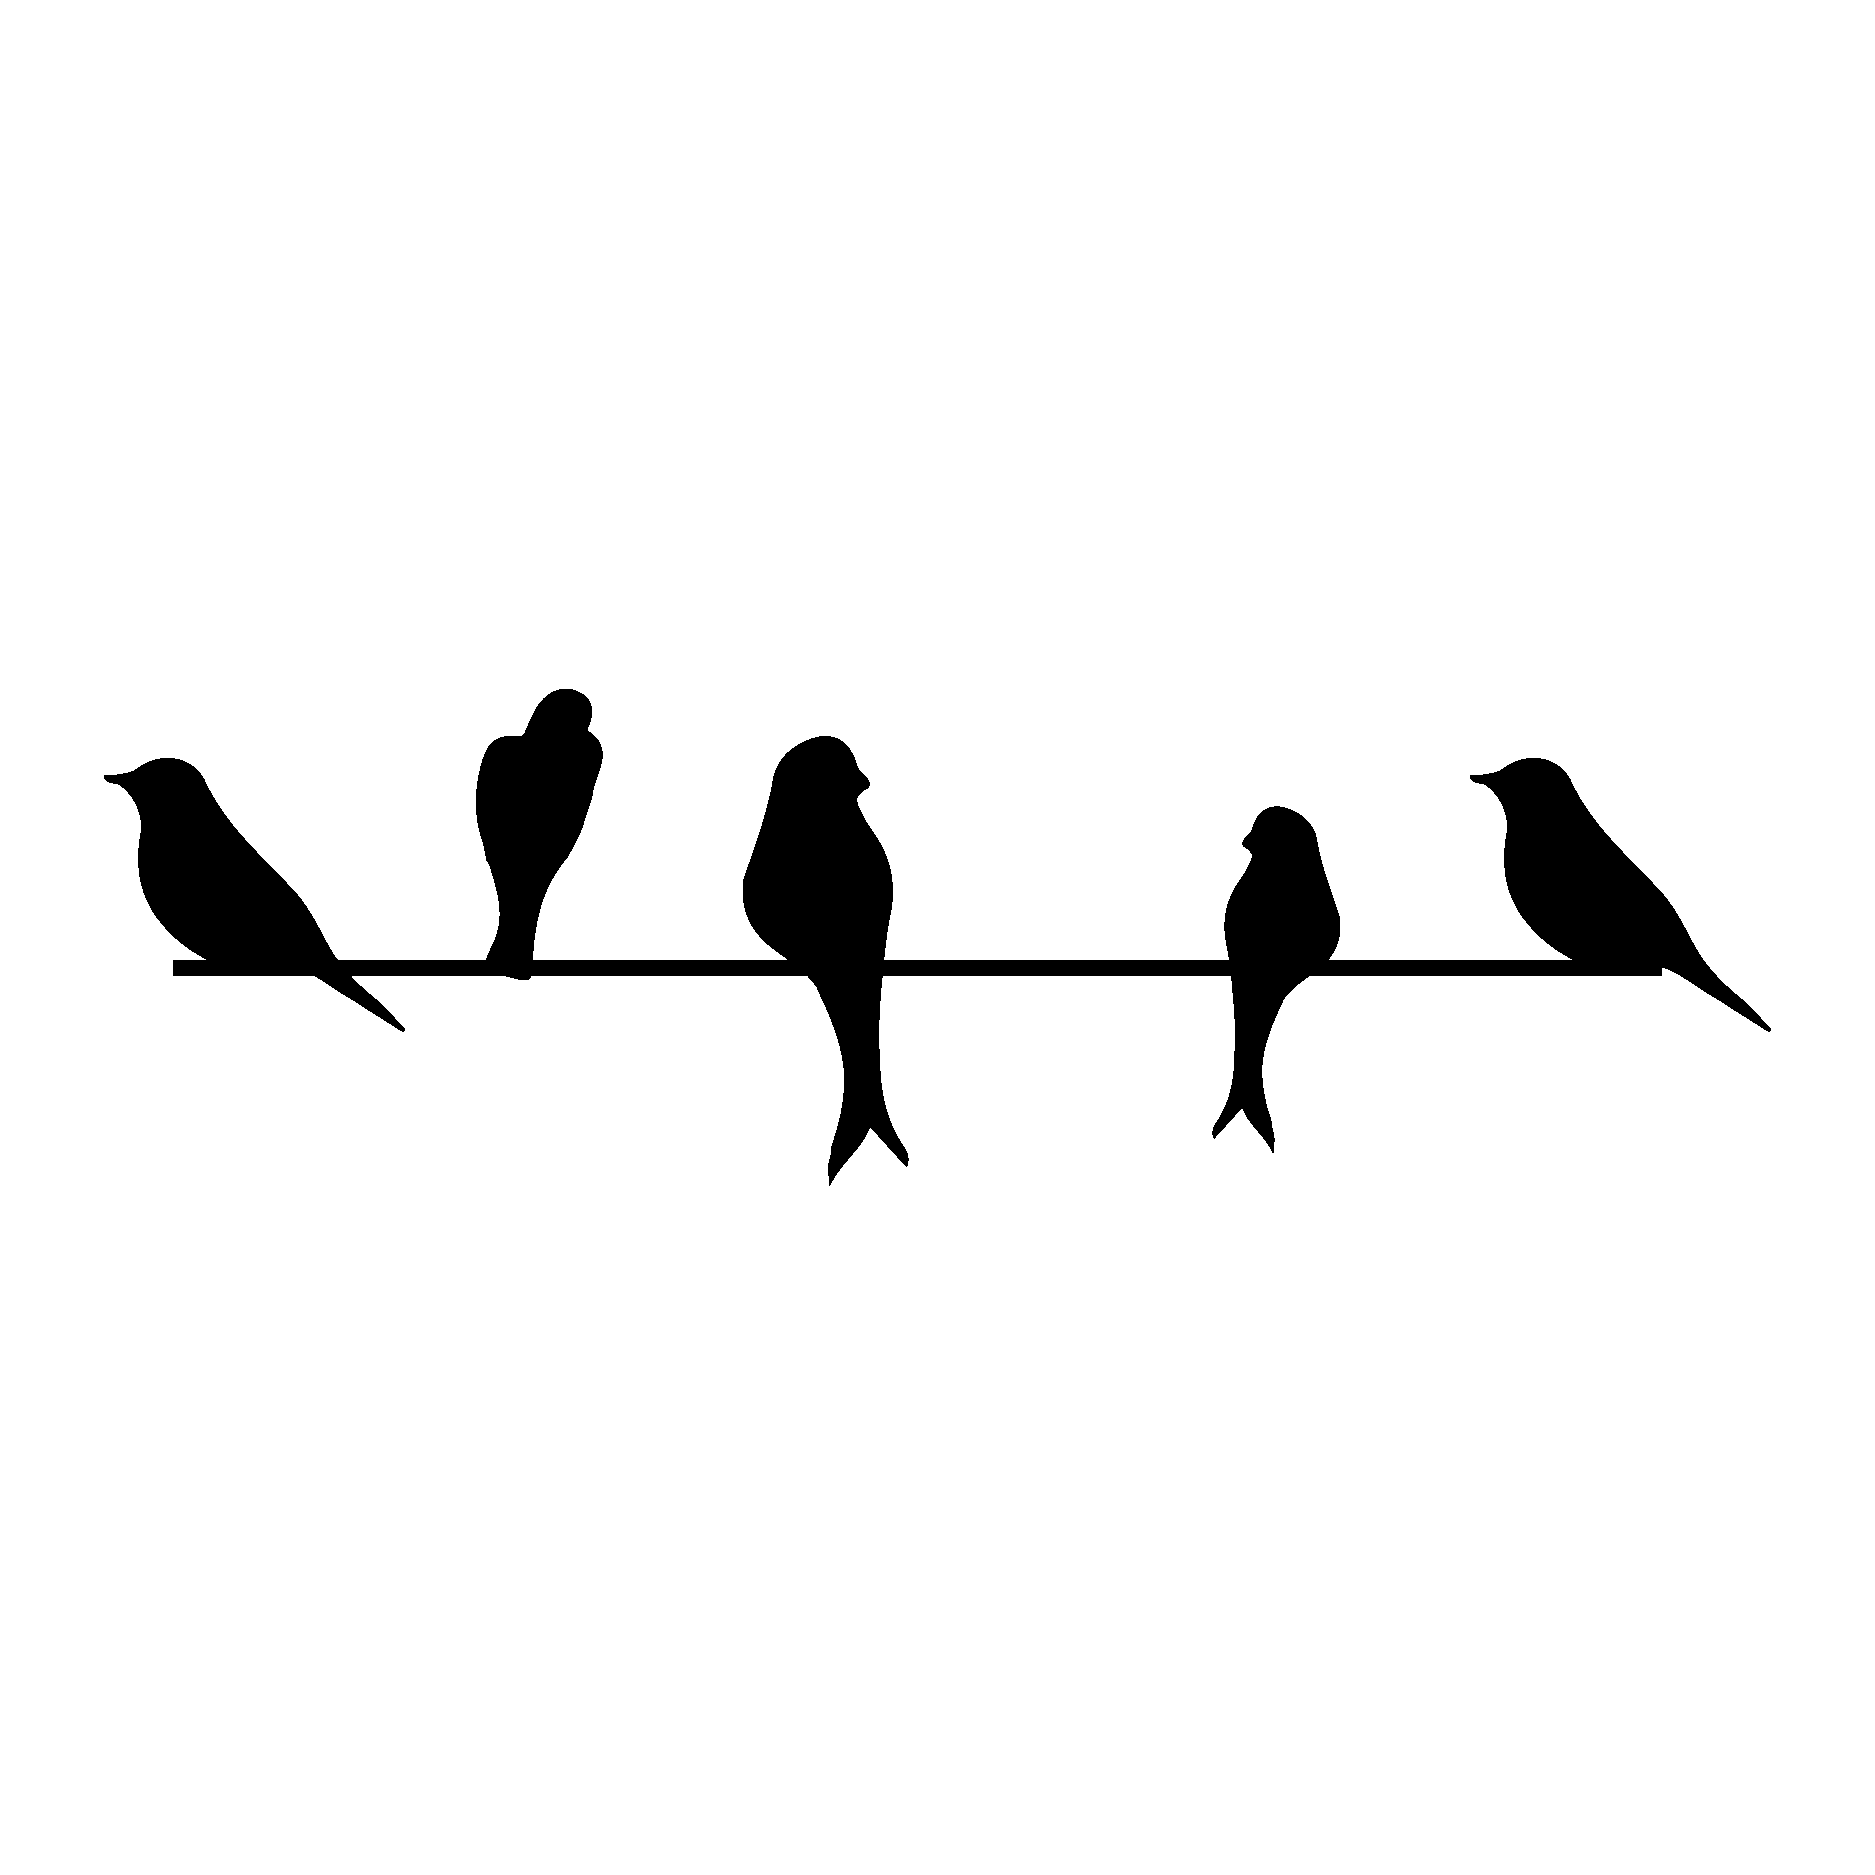 Bird Wall decal Sticker.